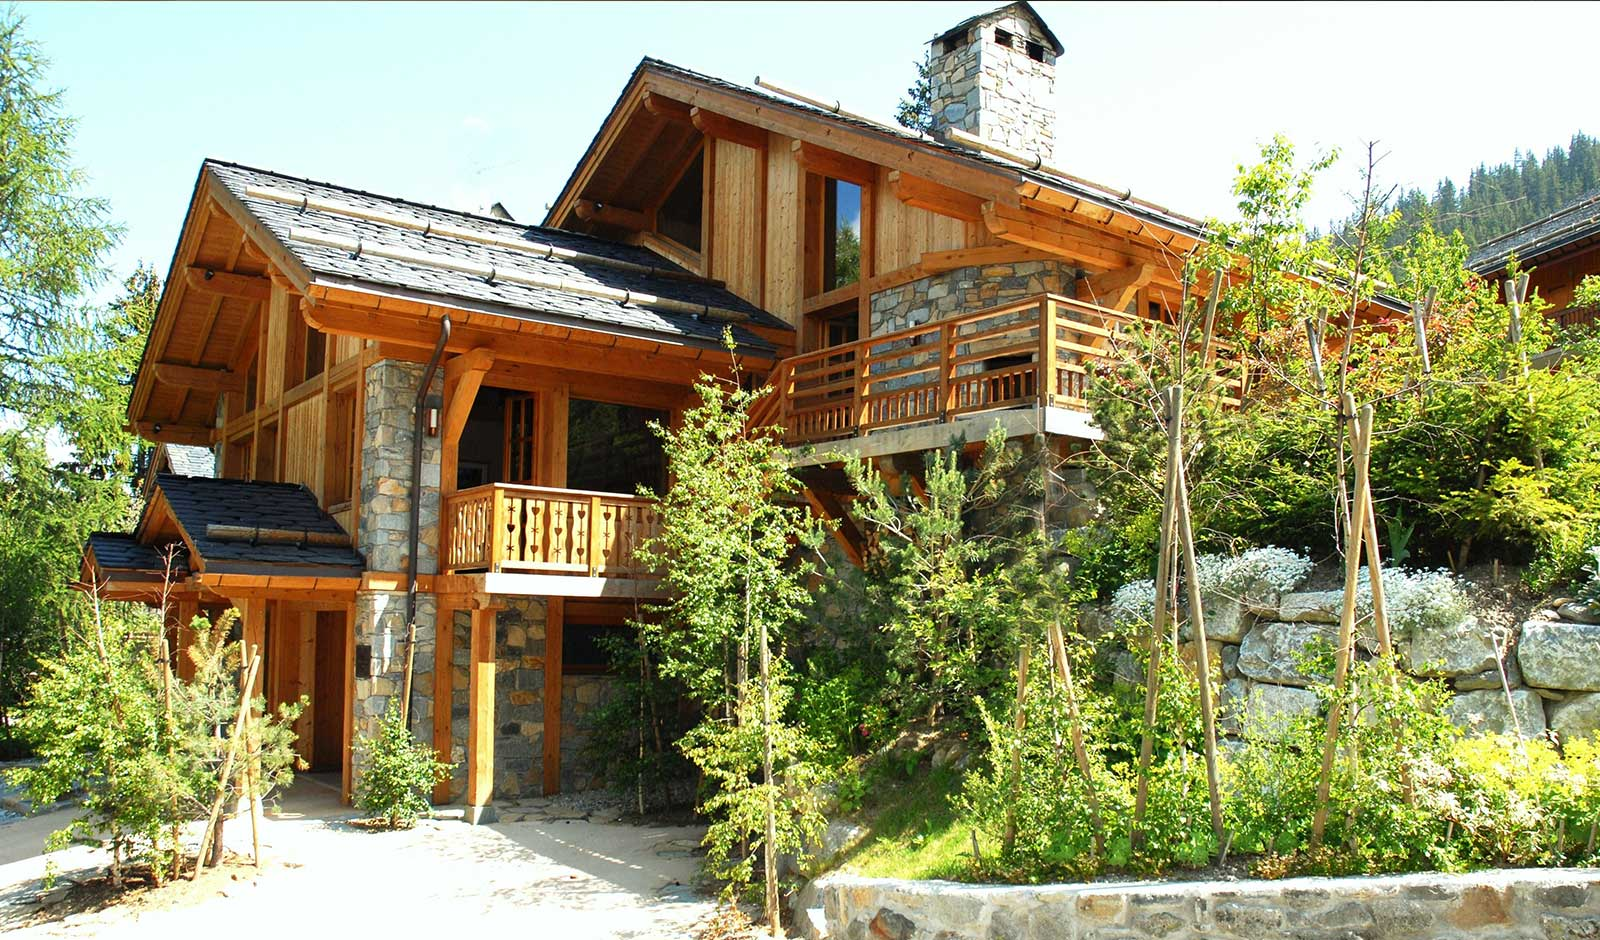 chalet-olympe-1-atelier-crea-and-co-architecte-design-project-manager-meribel-savoie